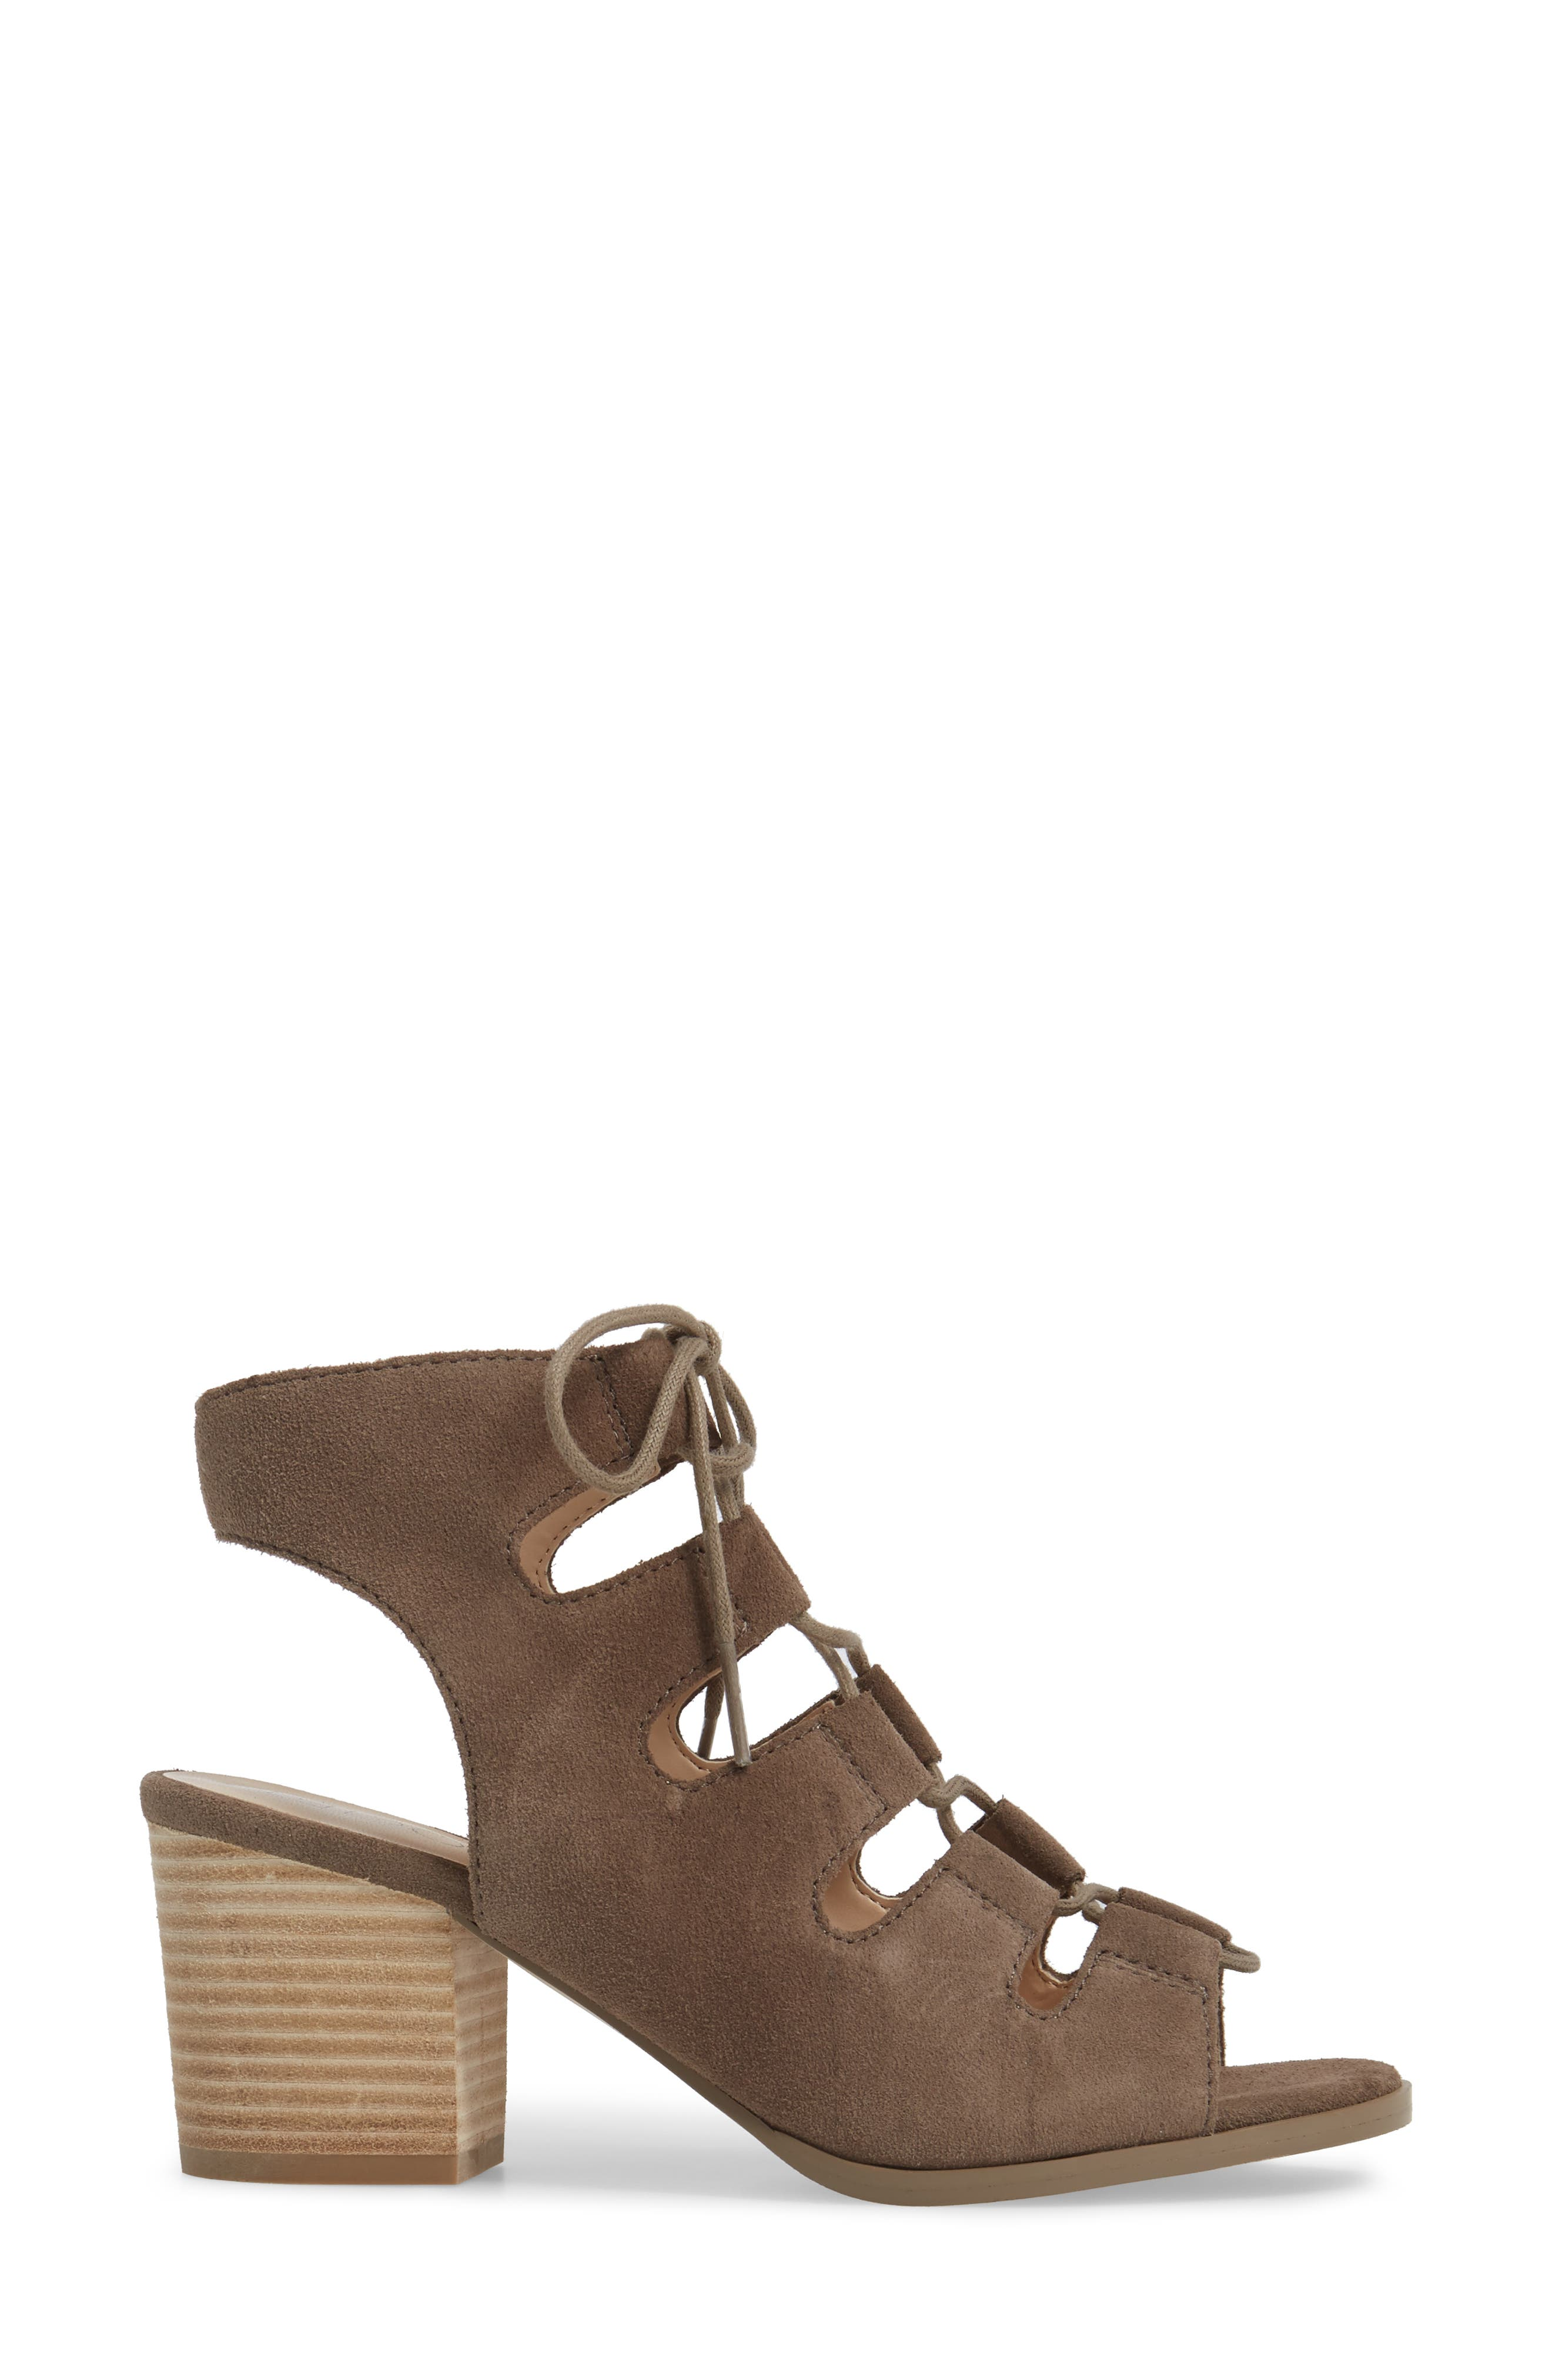 Alternate Image 3  - Sole Society Rae Block Heel Sandal (Women)